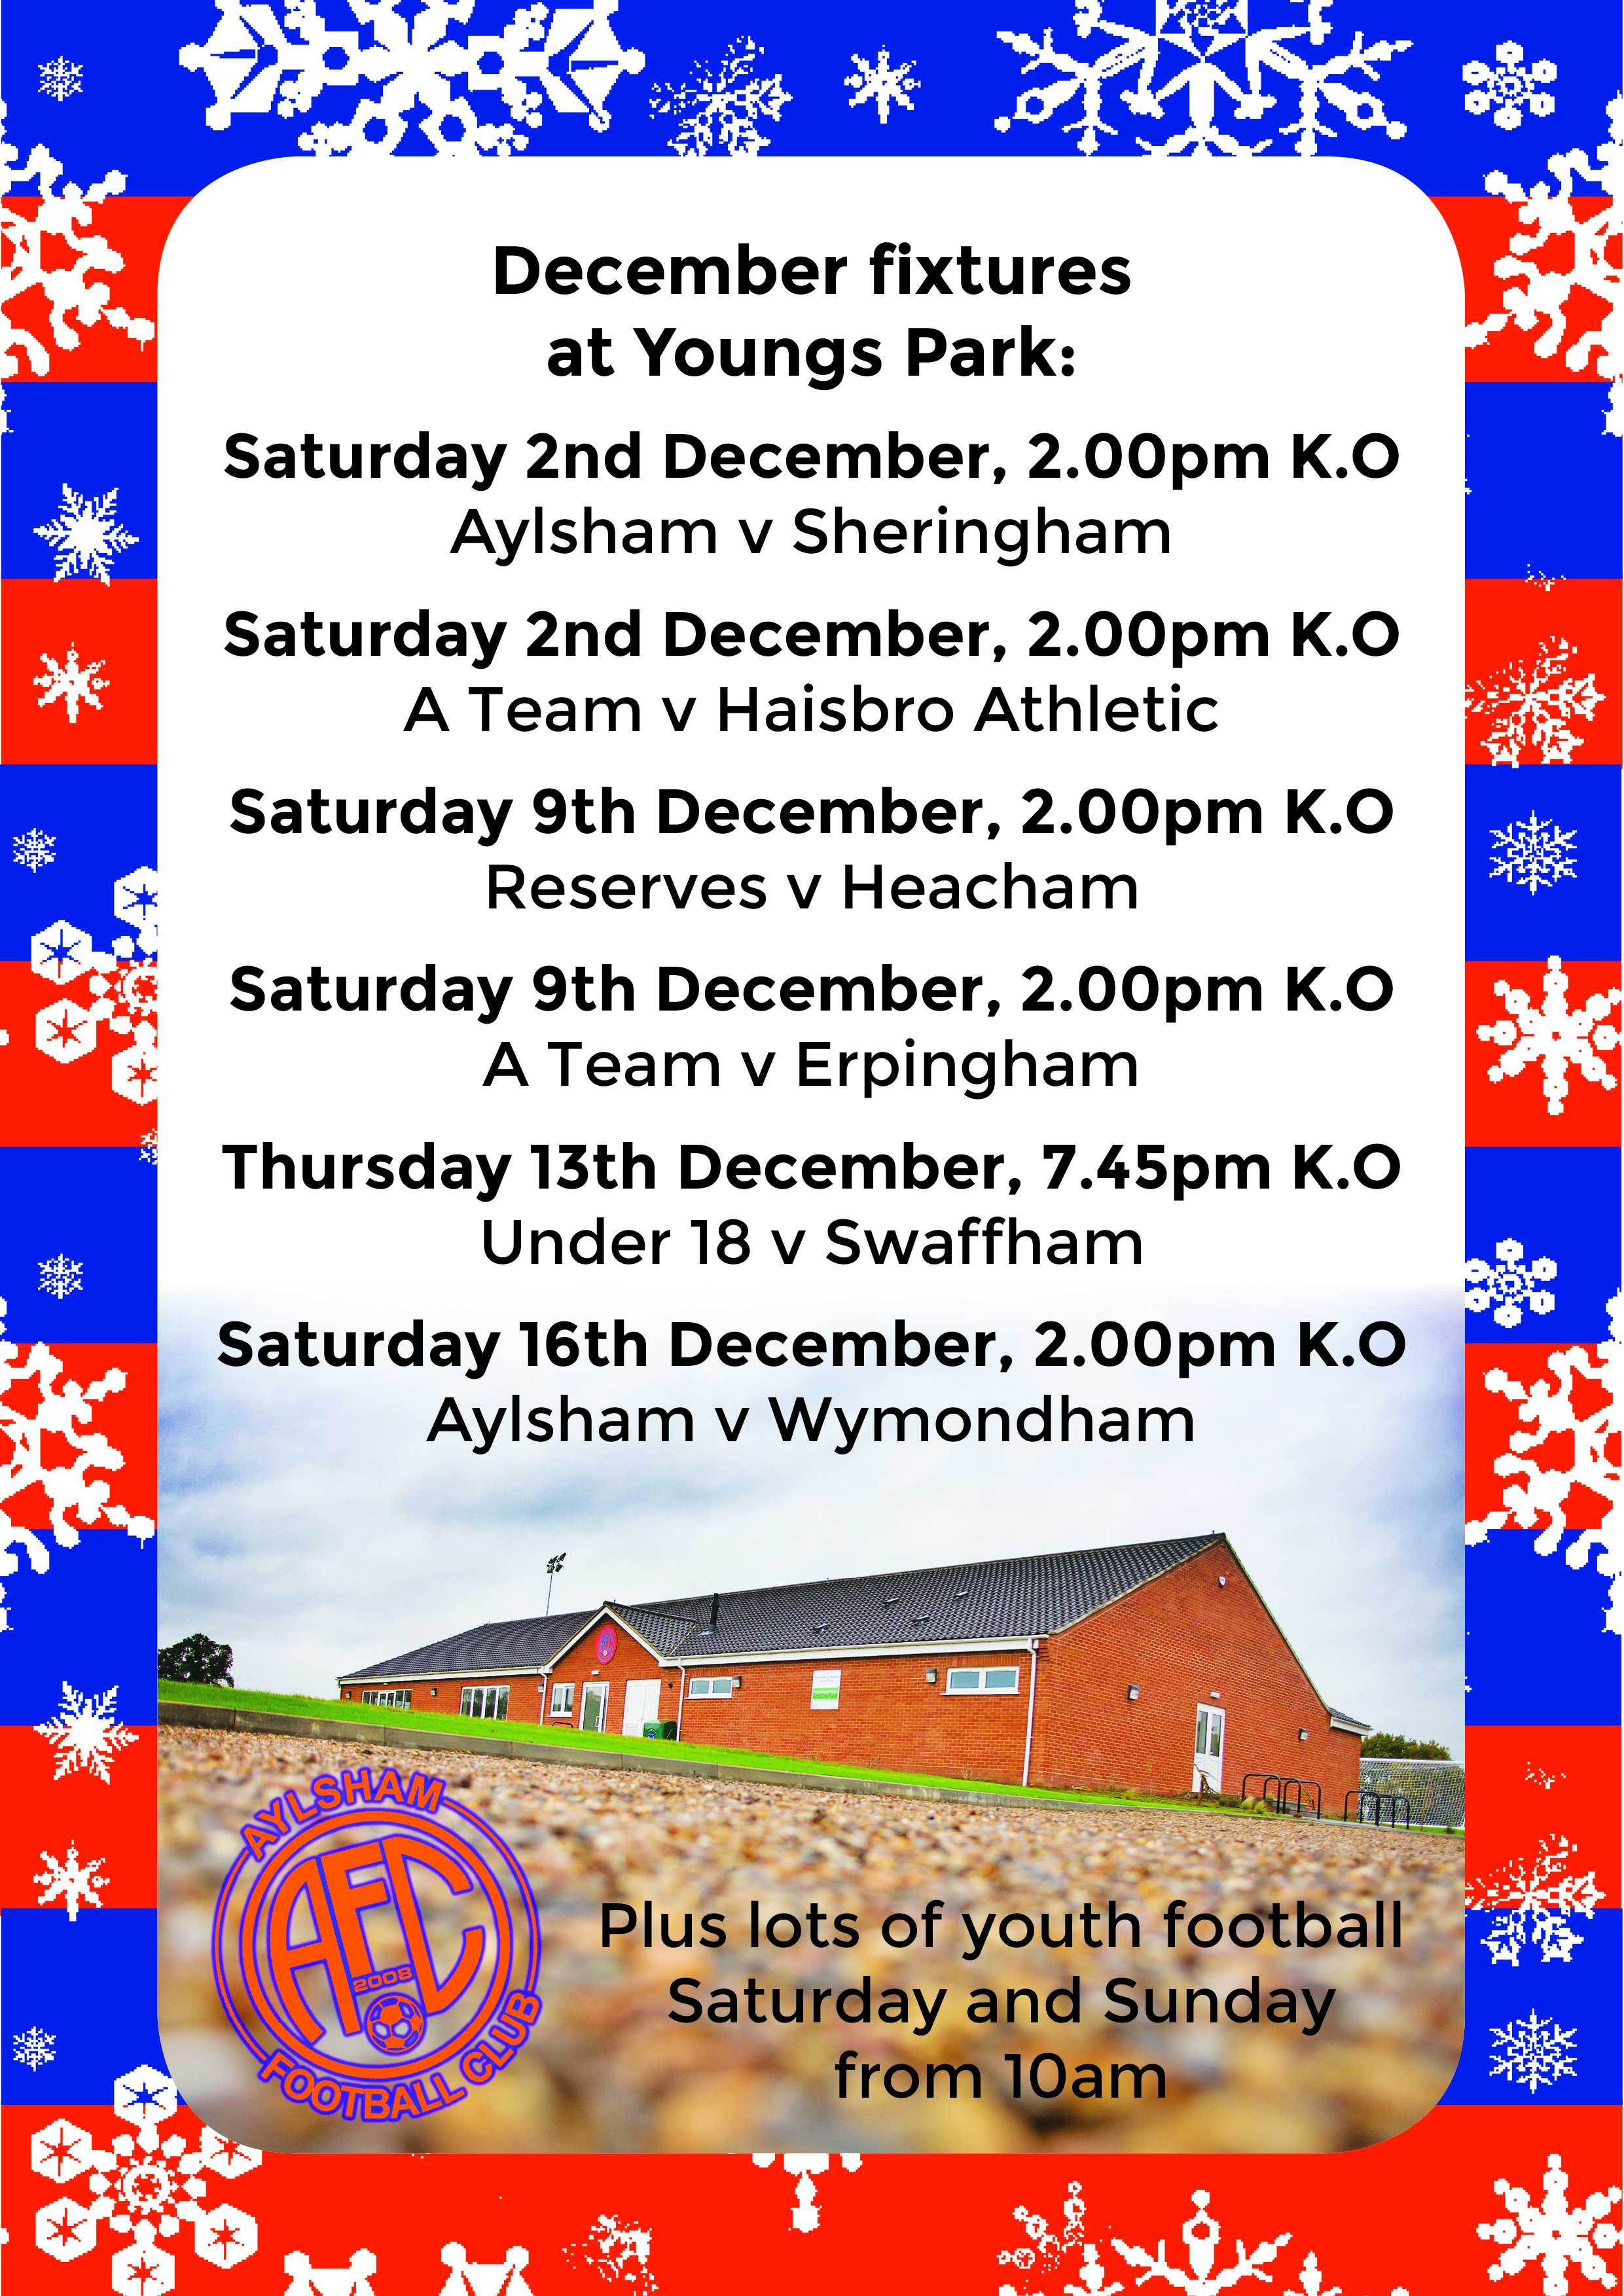 Next fixtures at Youngs Park